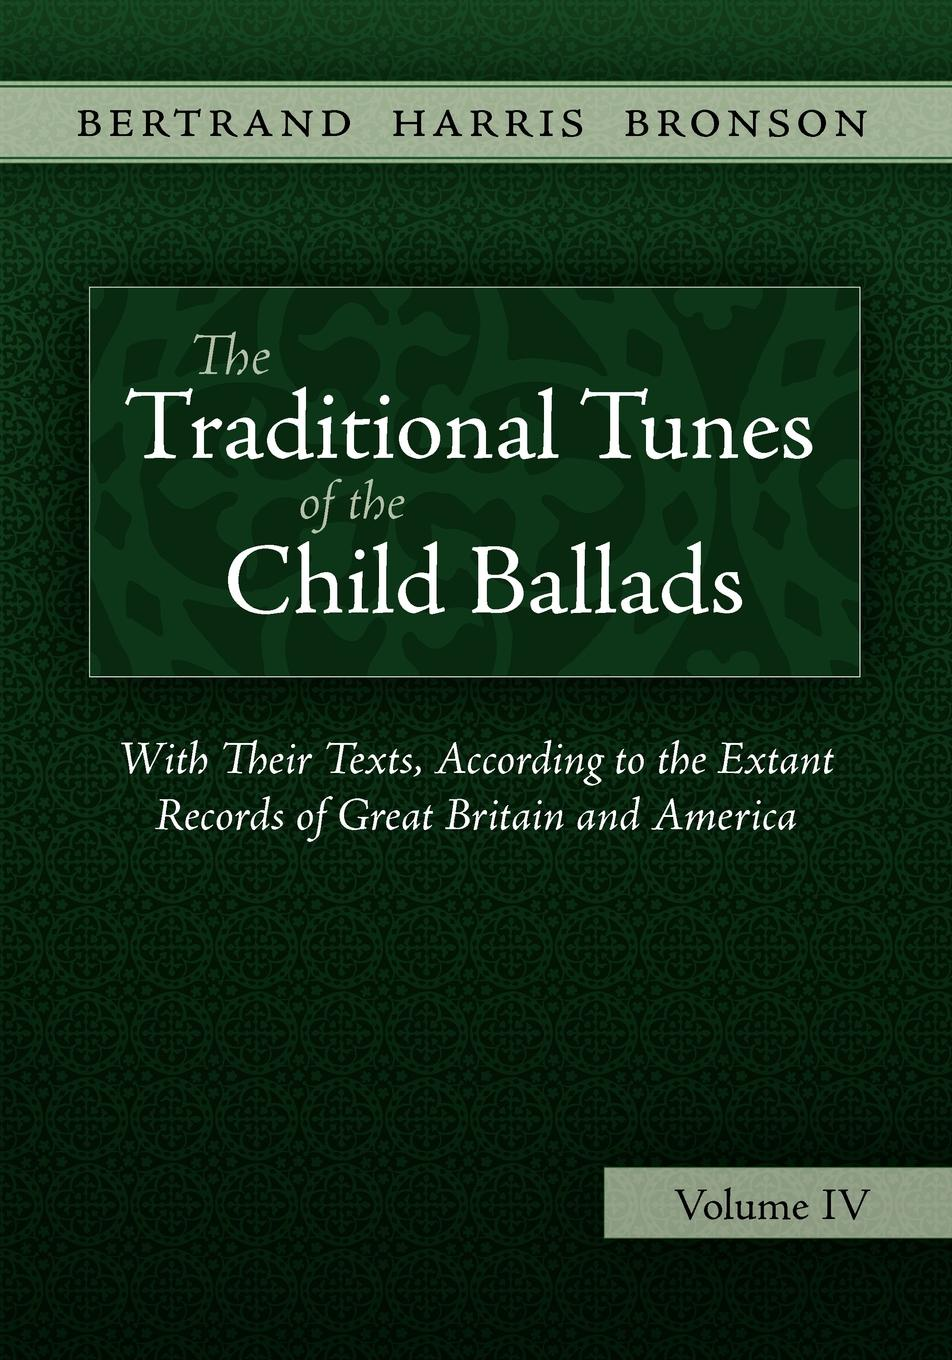 Bertrand Harris Bronson The Traditional Tunes of the Child Ballads, Vol 4 heart ballads